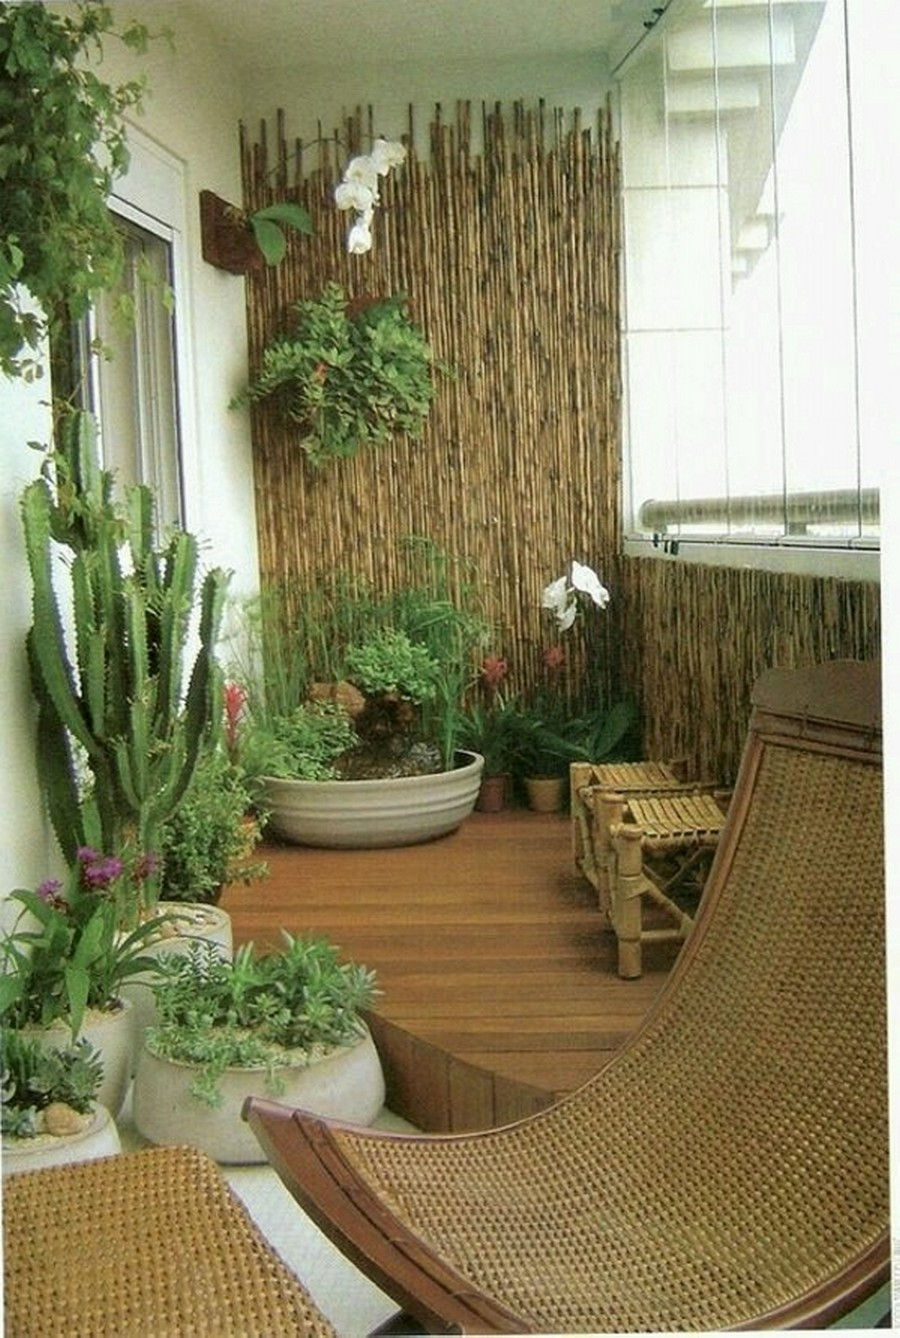 10 clever ways to decorate your balcony area recycled things for Garden accents and decor